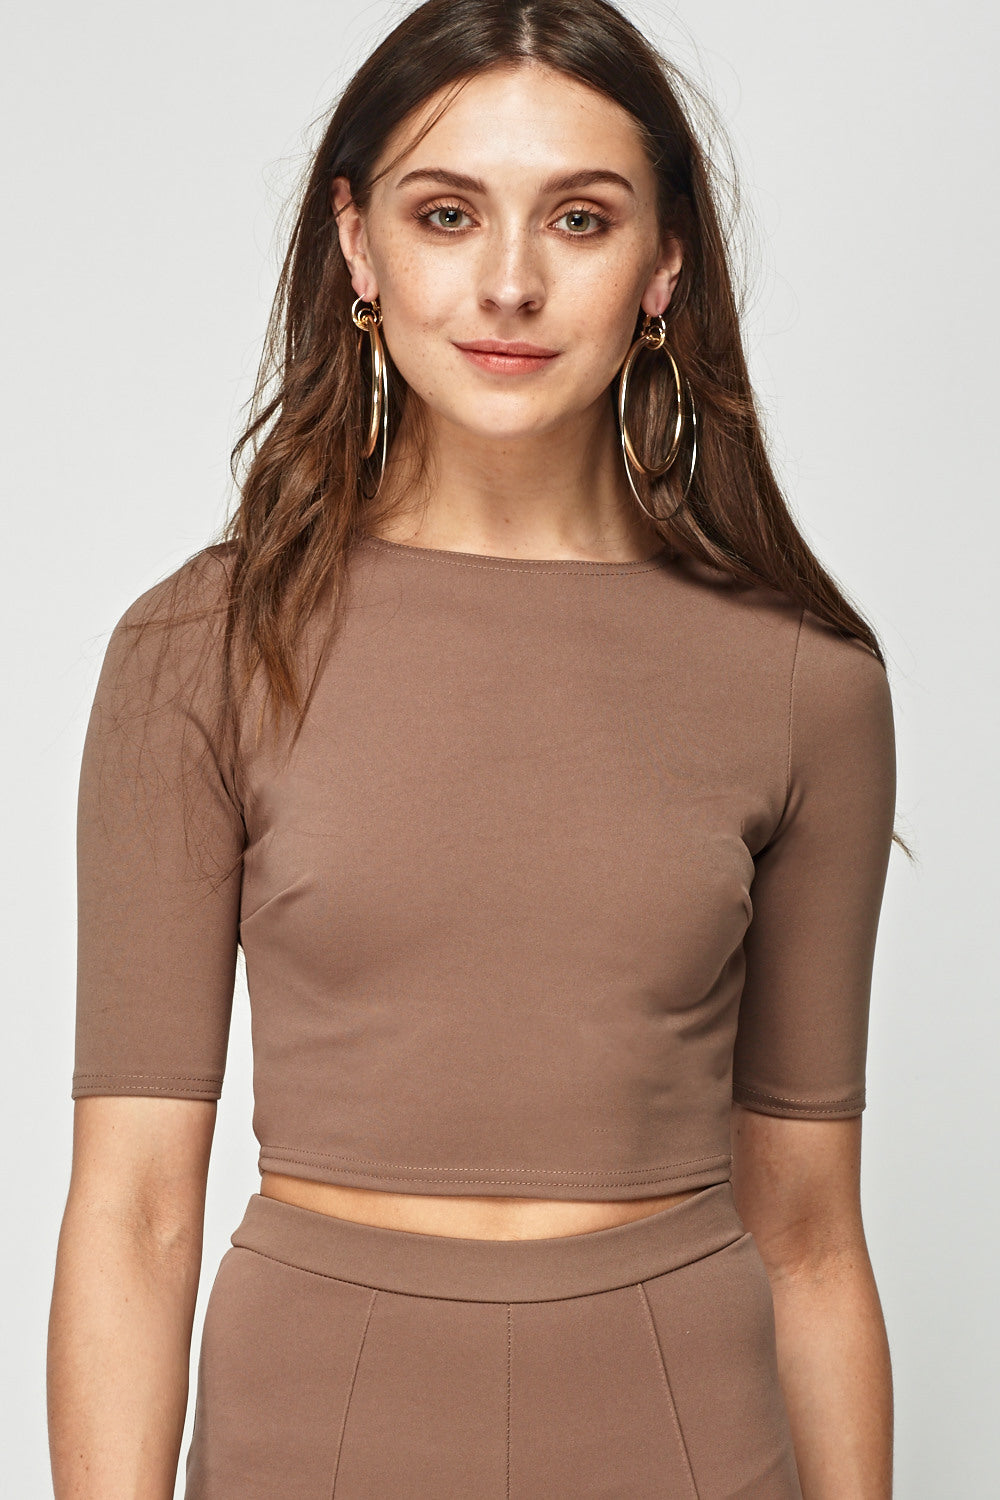 Crop top - MiTiendaSecreta